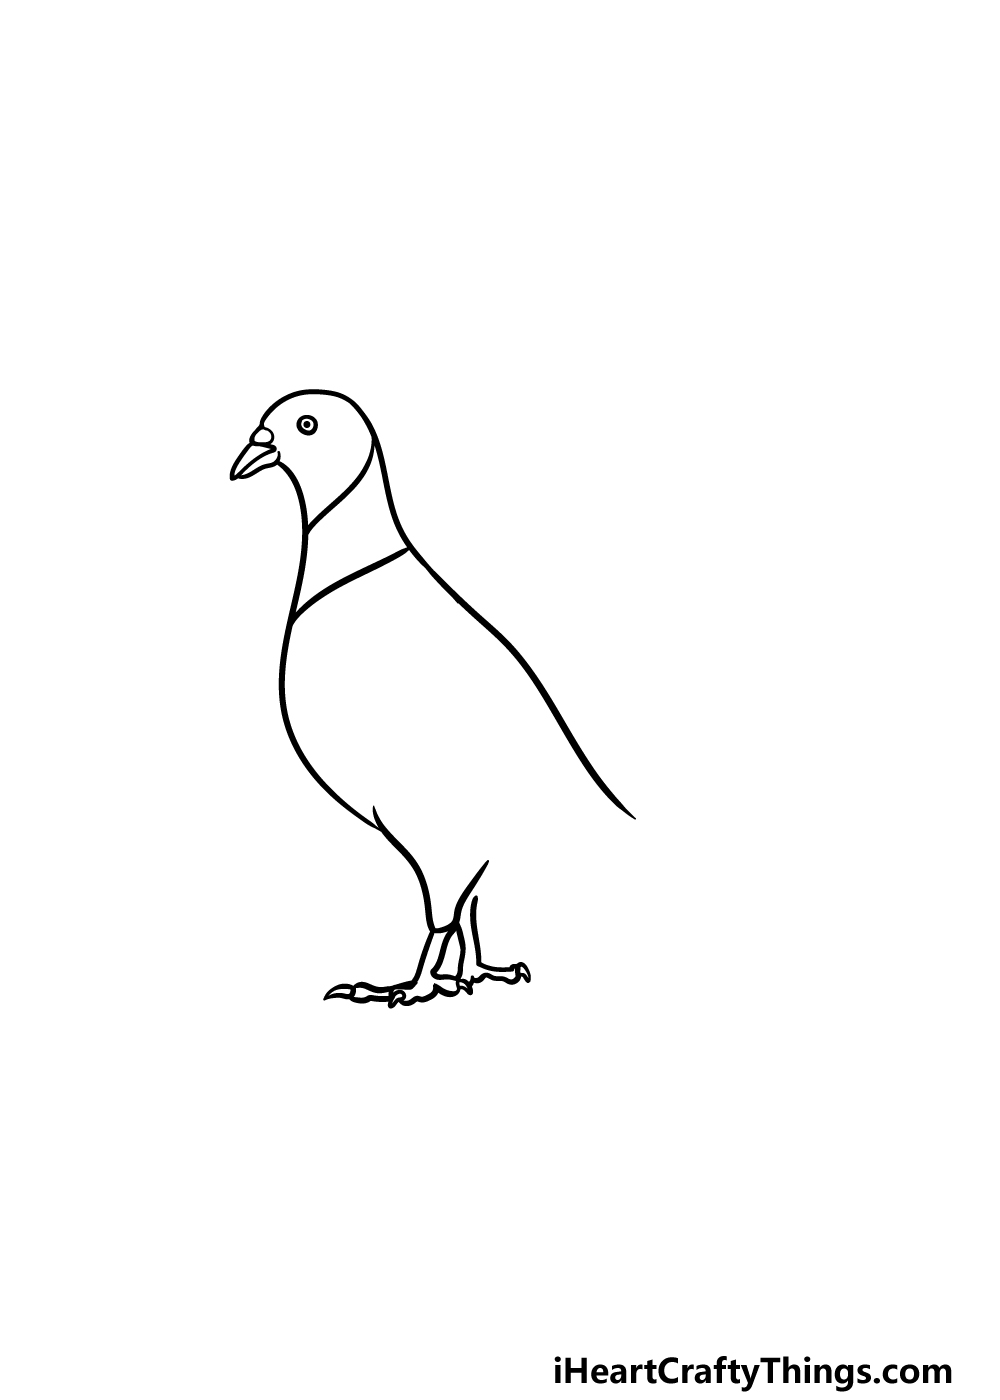 drawing a pigeon step 2